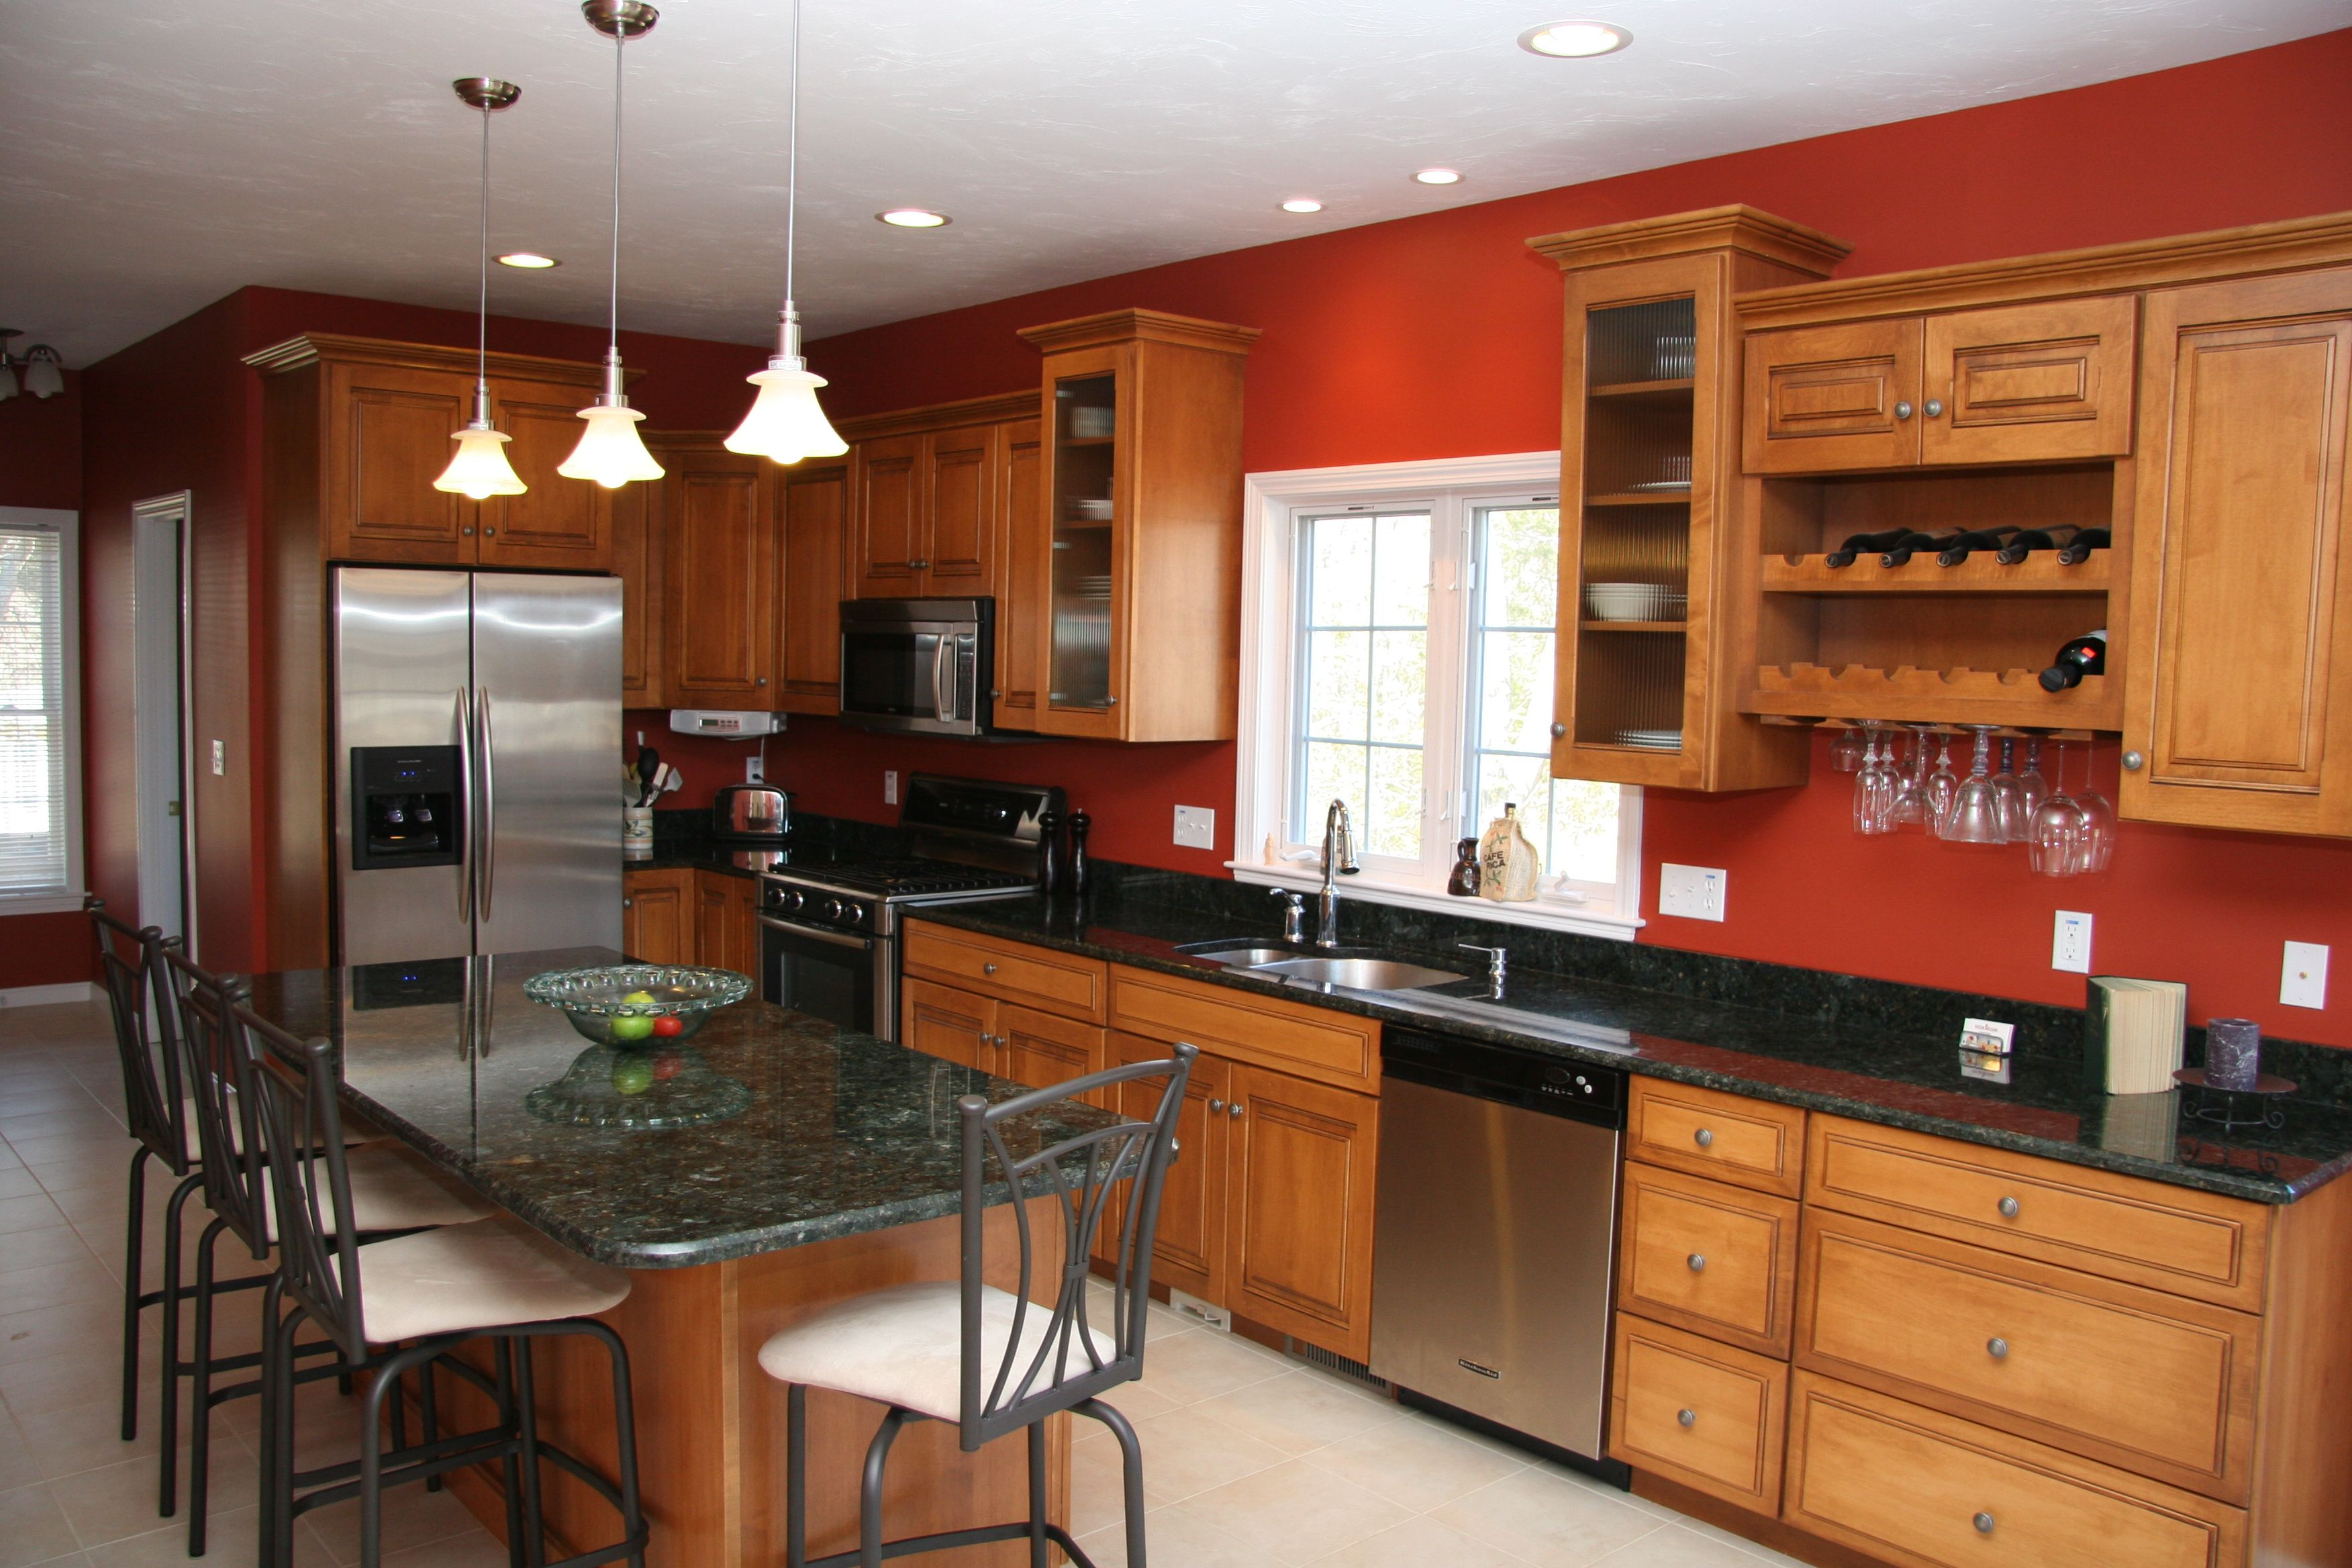 dynasty by omega kitchen cabinets from ragonese kitchen and bath rh pinterest com